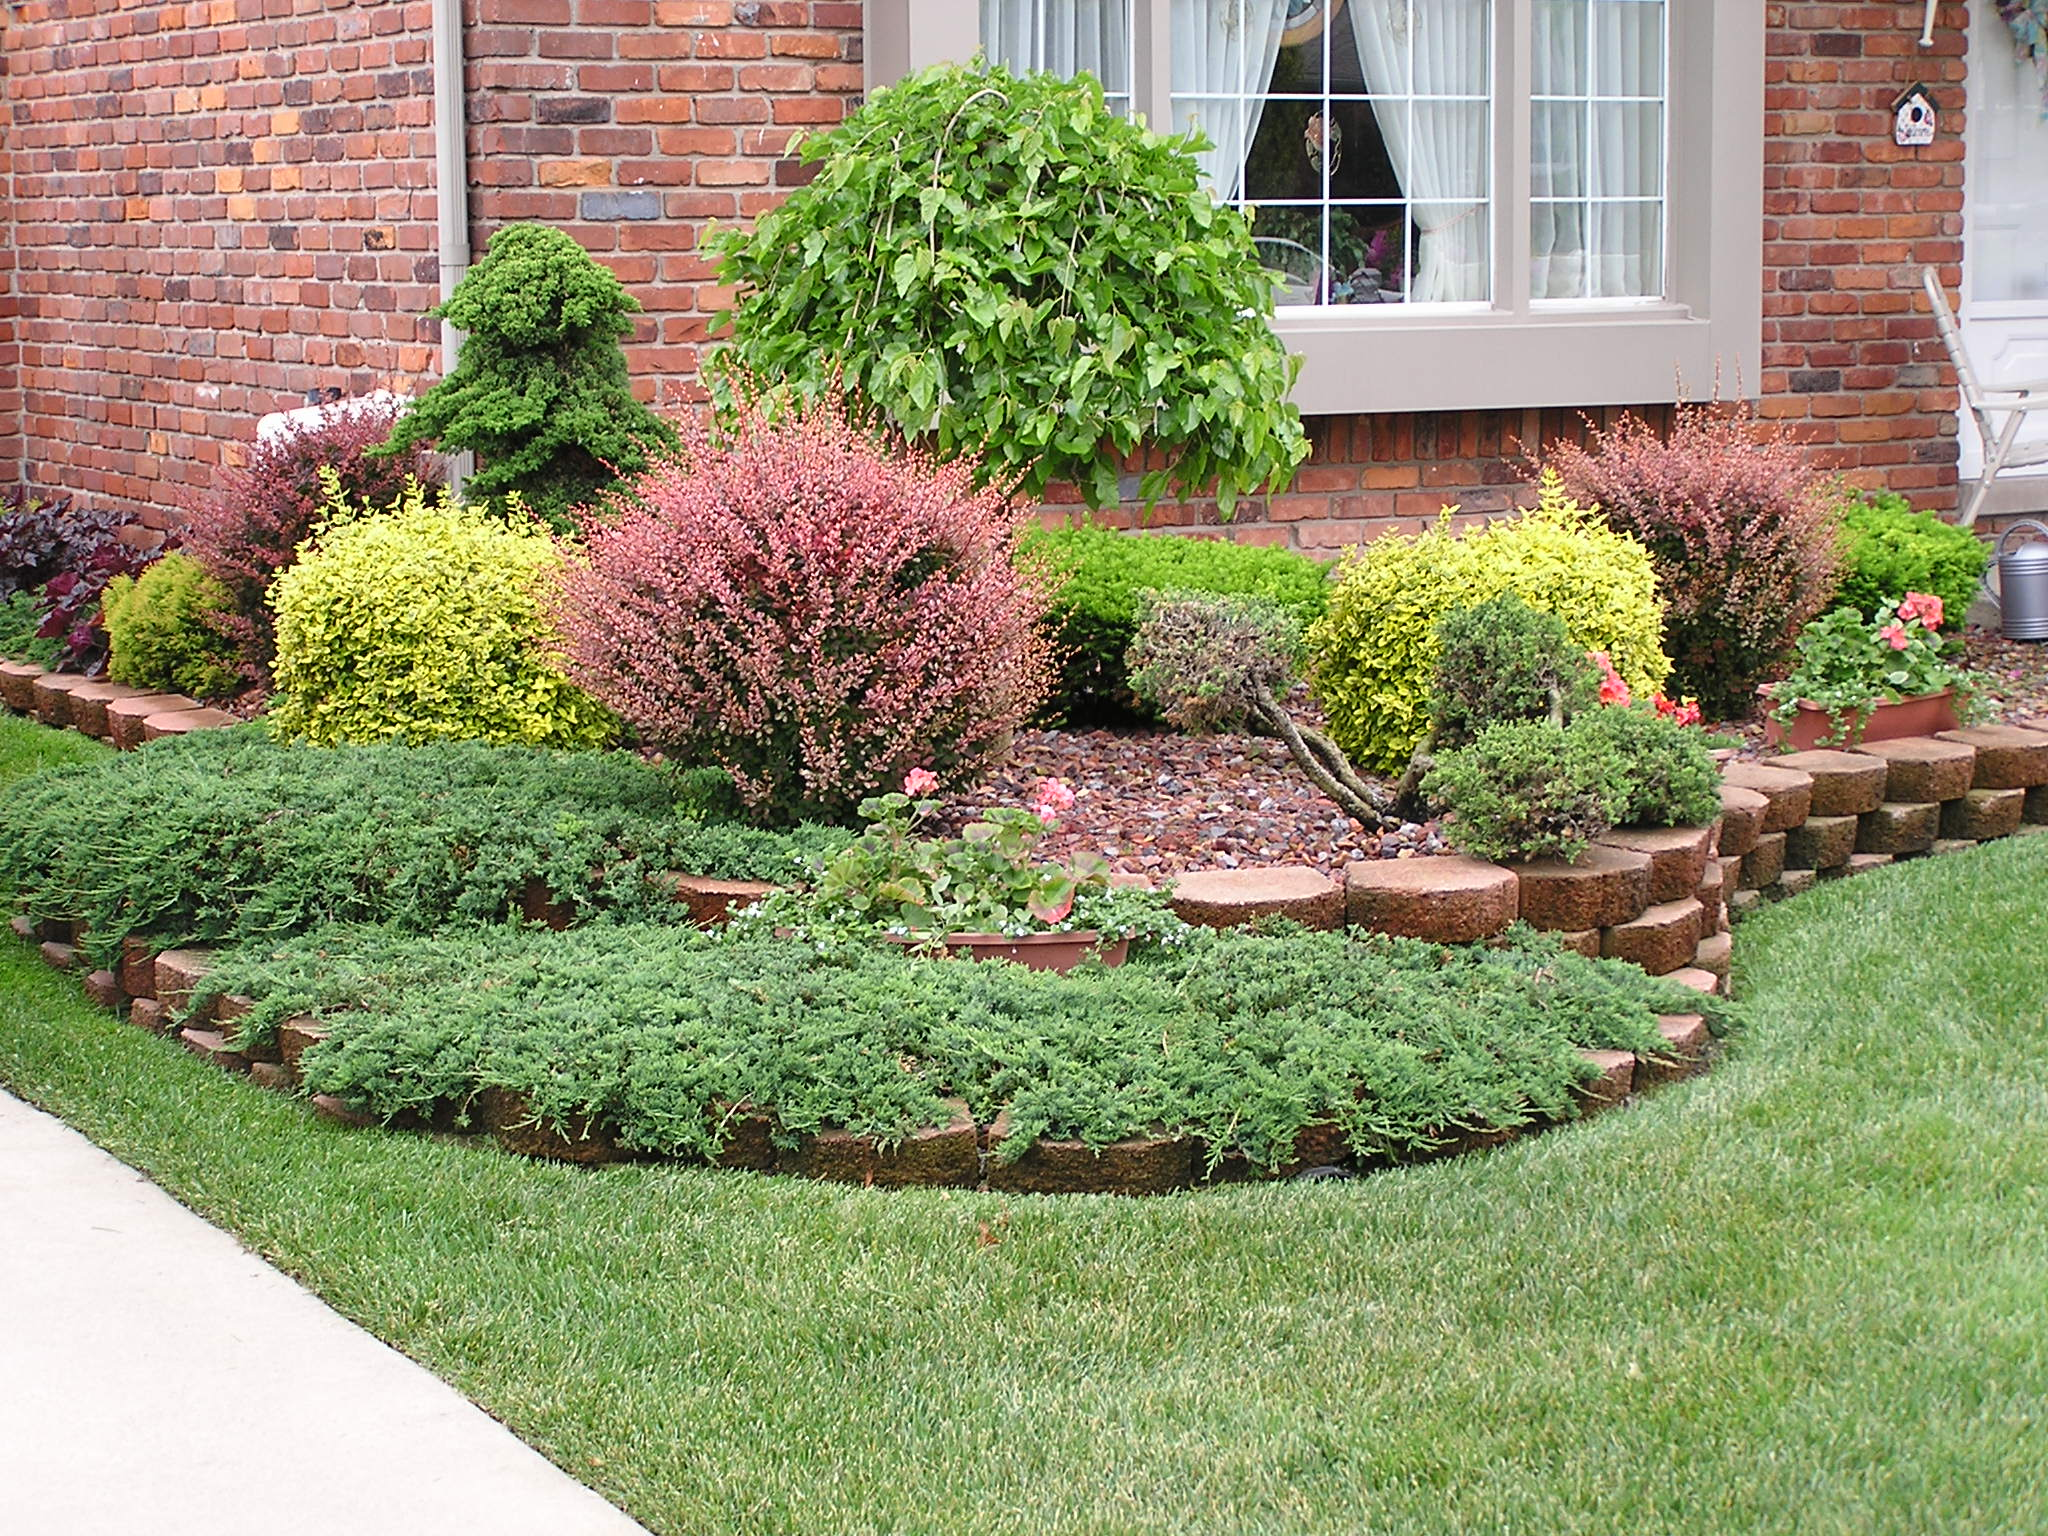 Front yard landscaping ideas for Landscape design ideas